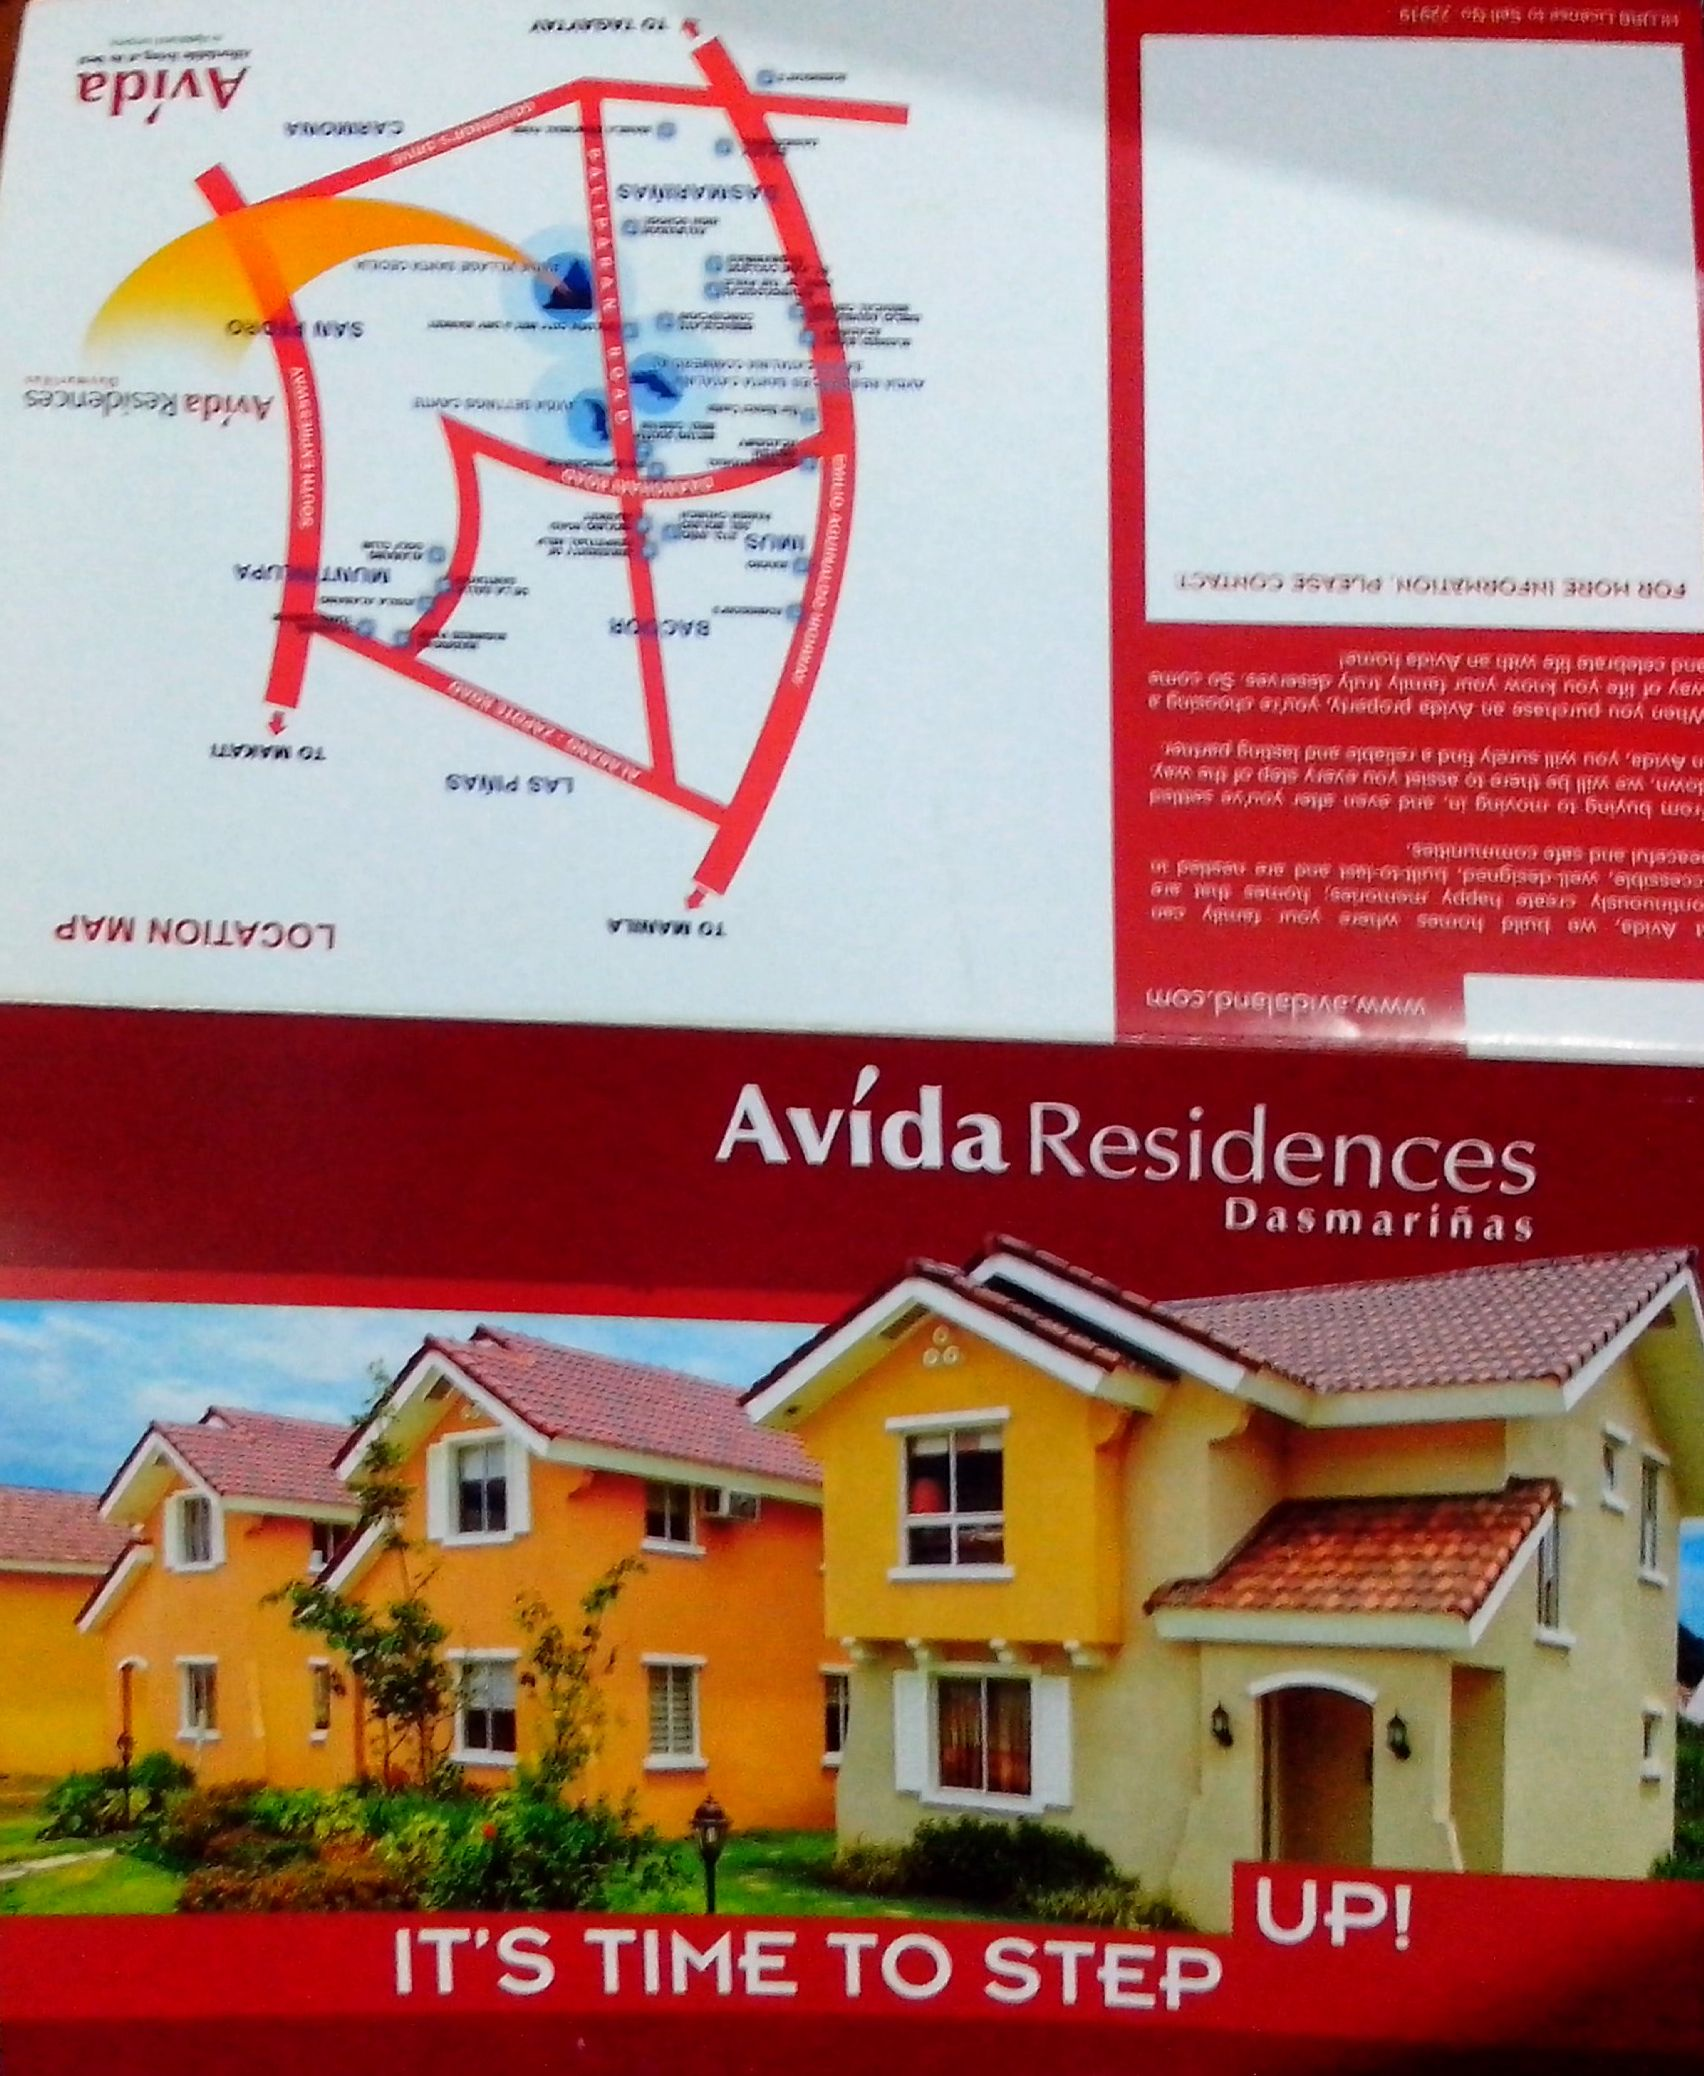 FOR SALE: Other Announcements Cavite > Dasmarinas